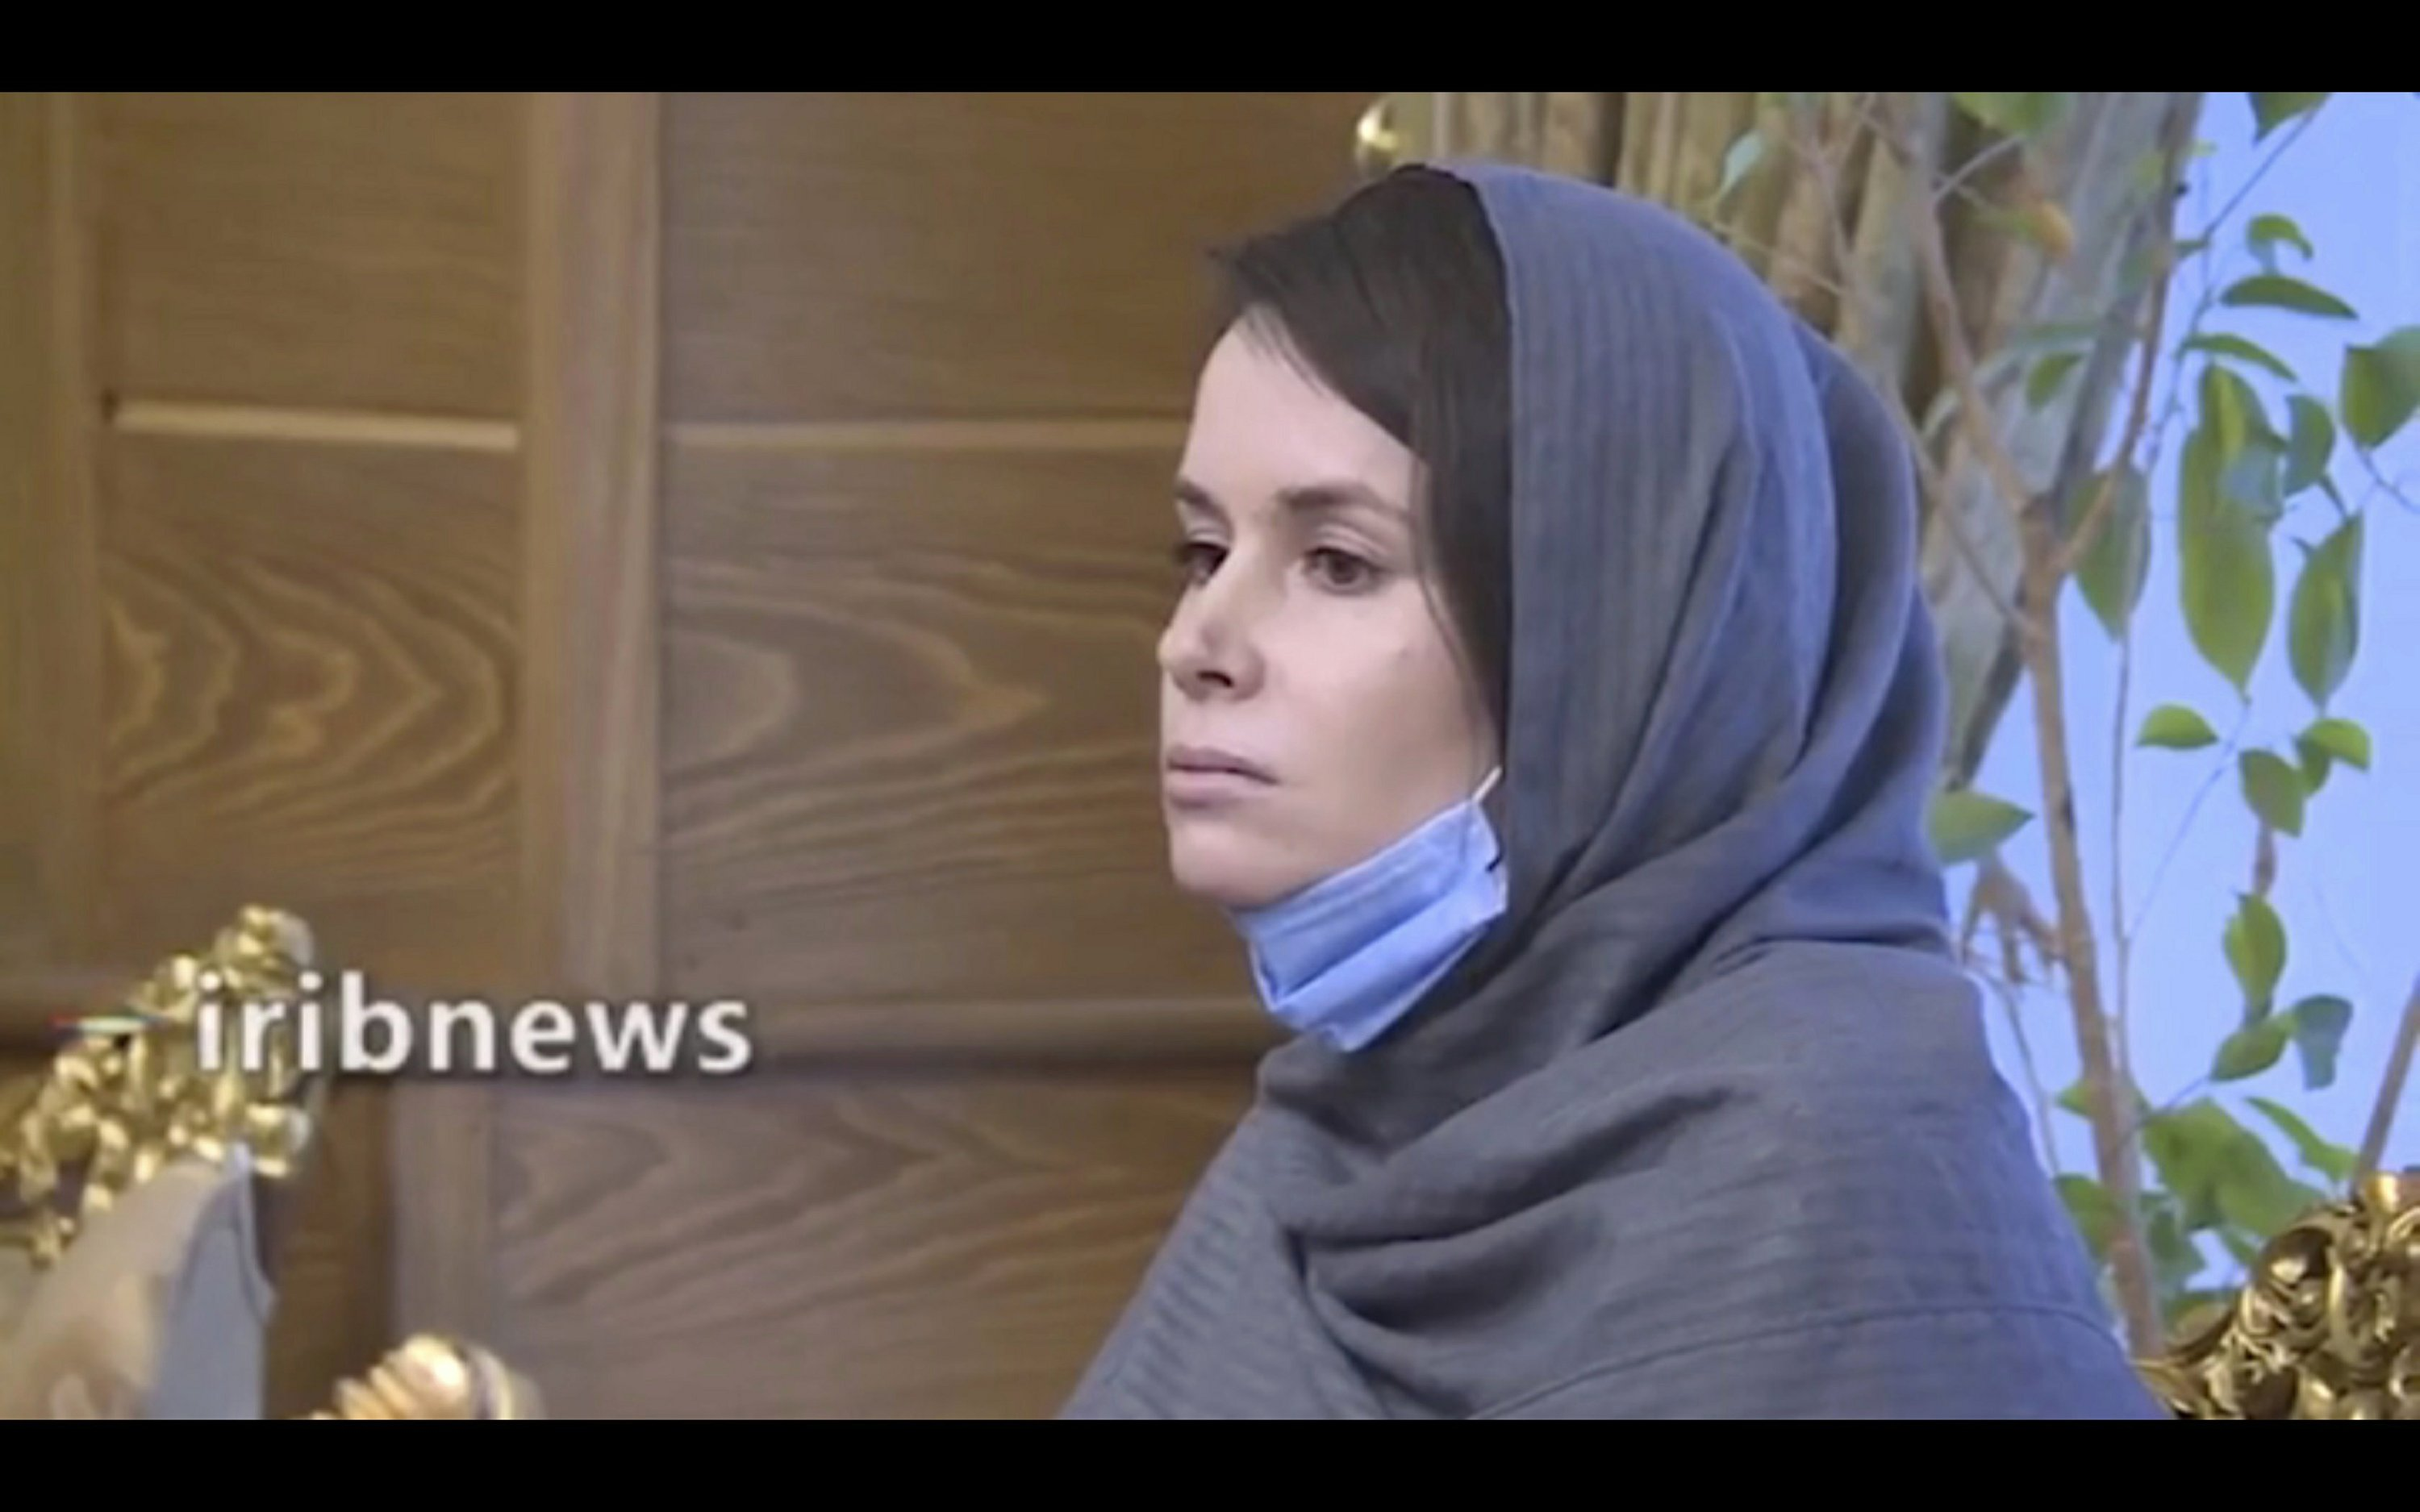 Thailand approved transfer of 3 Iranians as Australian freed